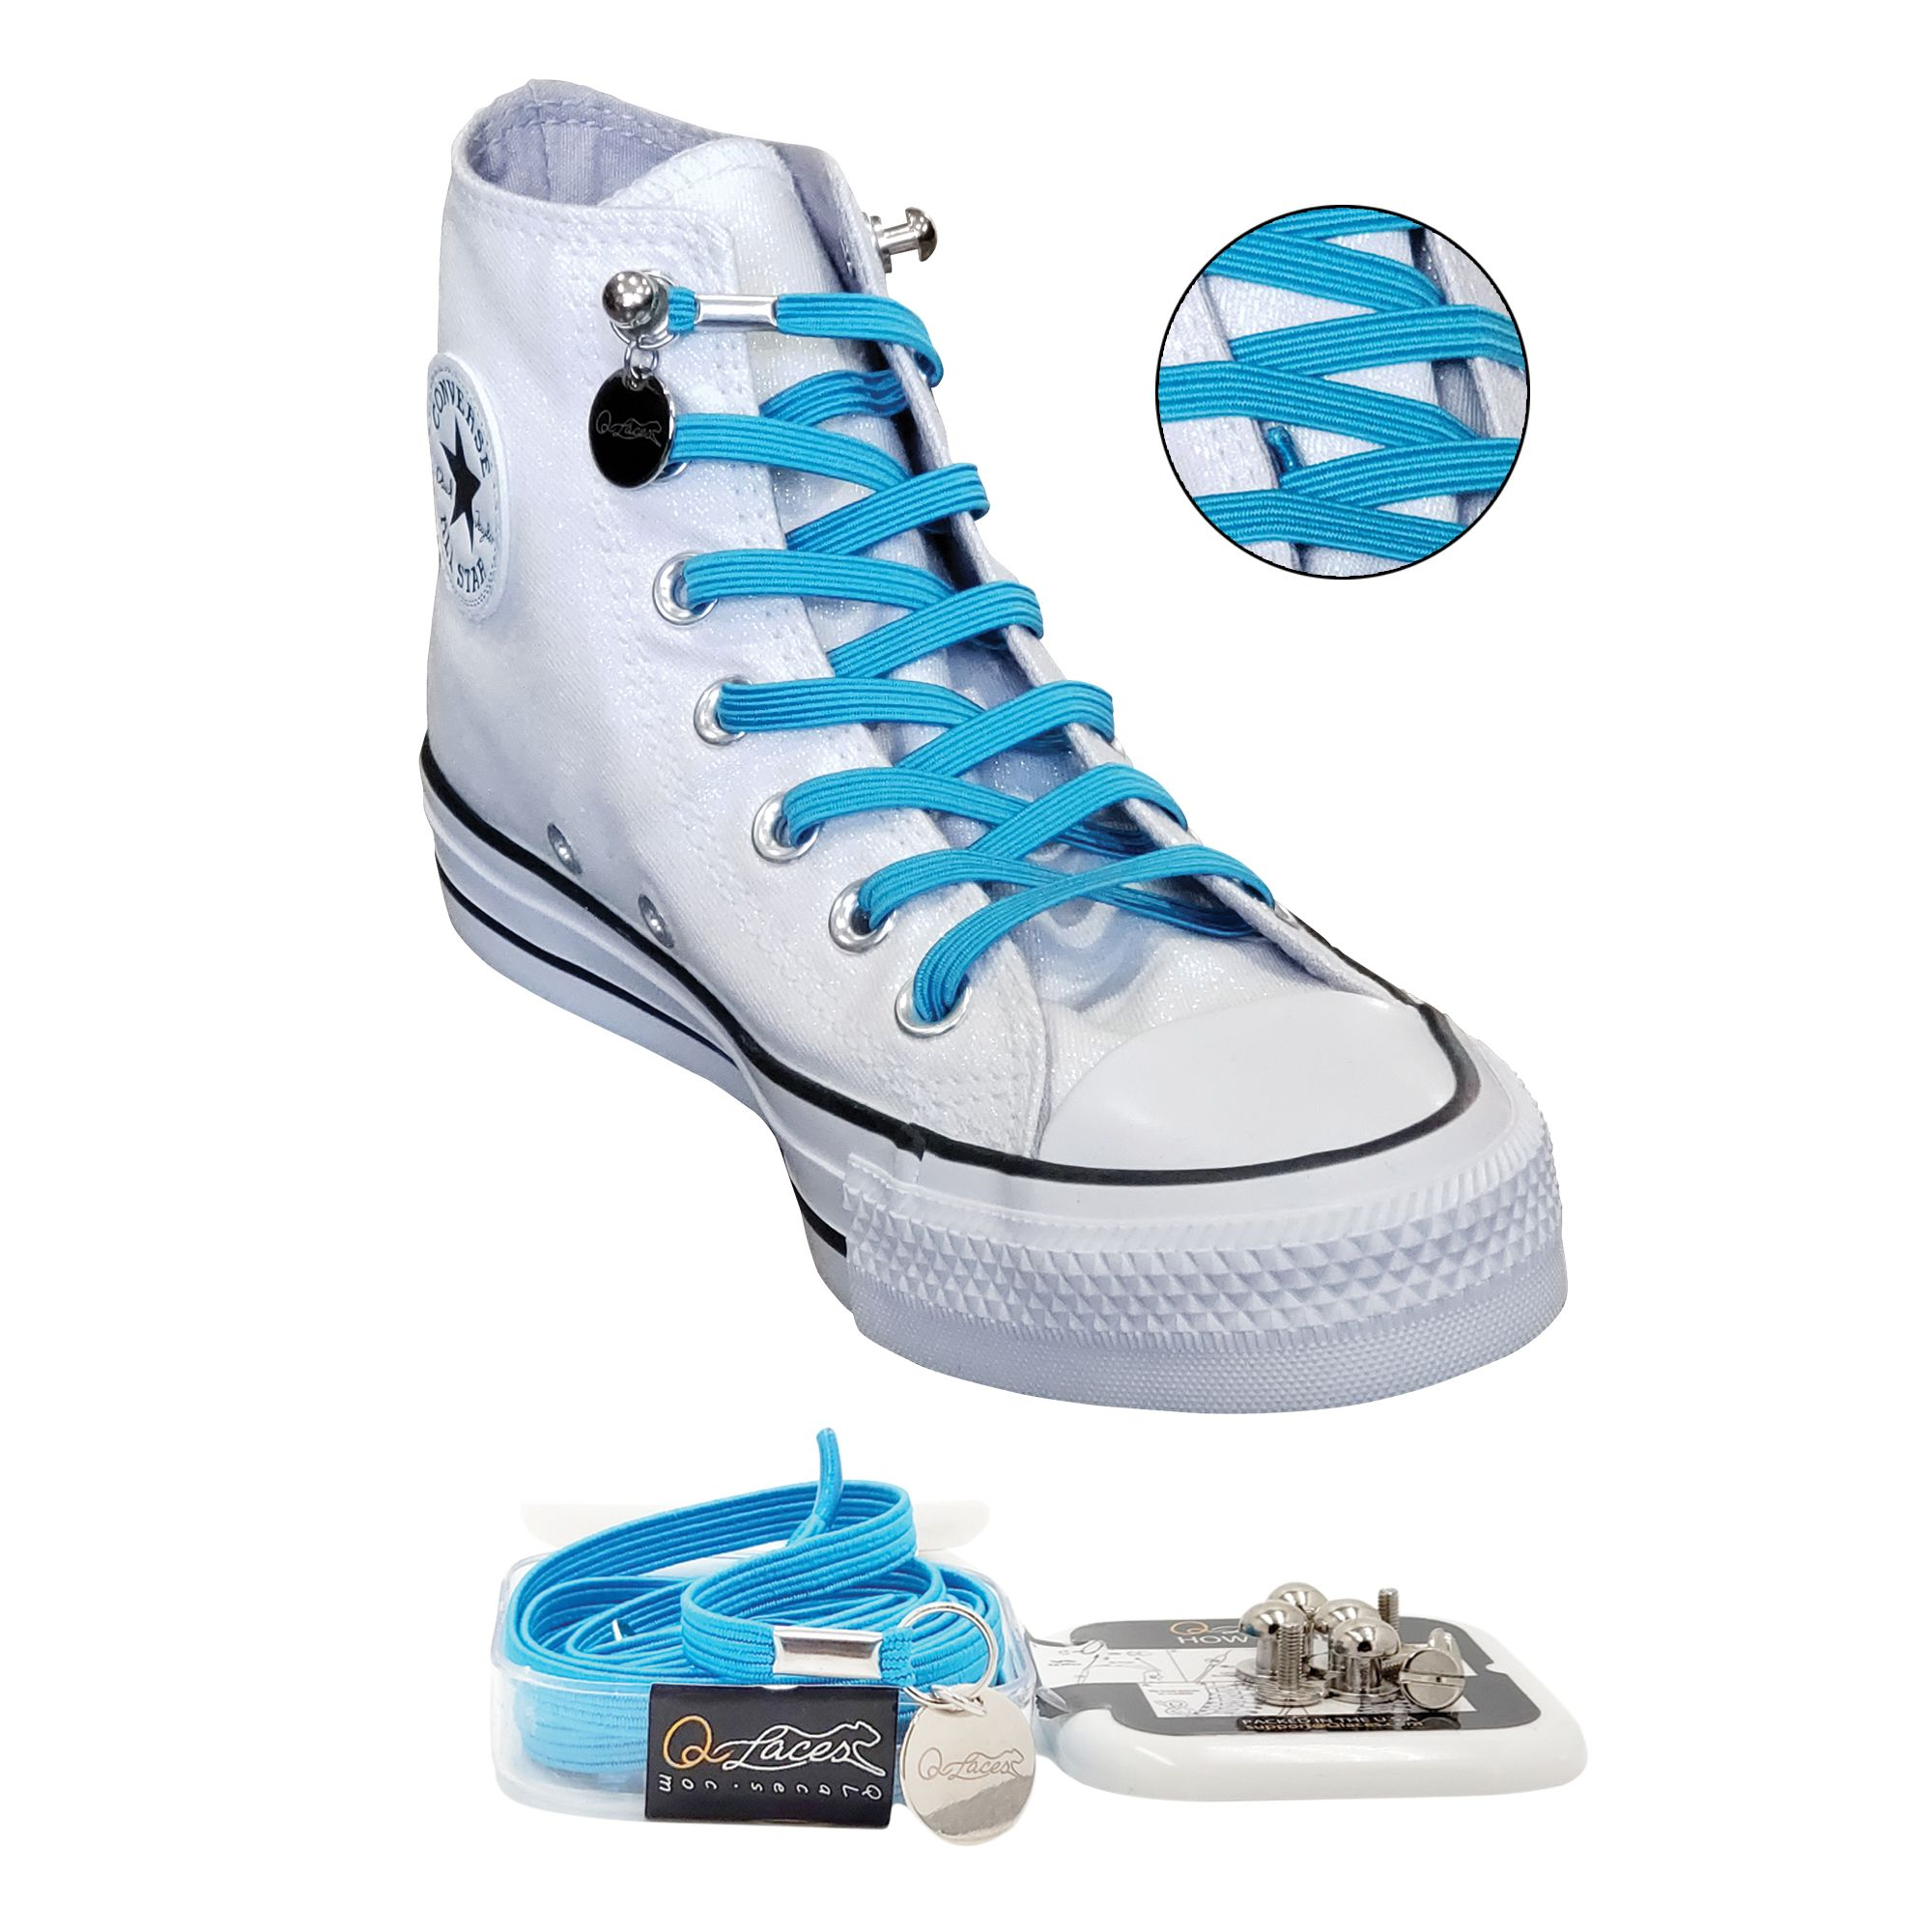 how long are shoelaces for converse high tops